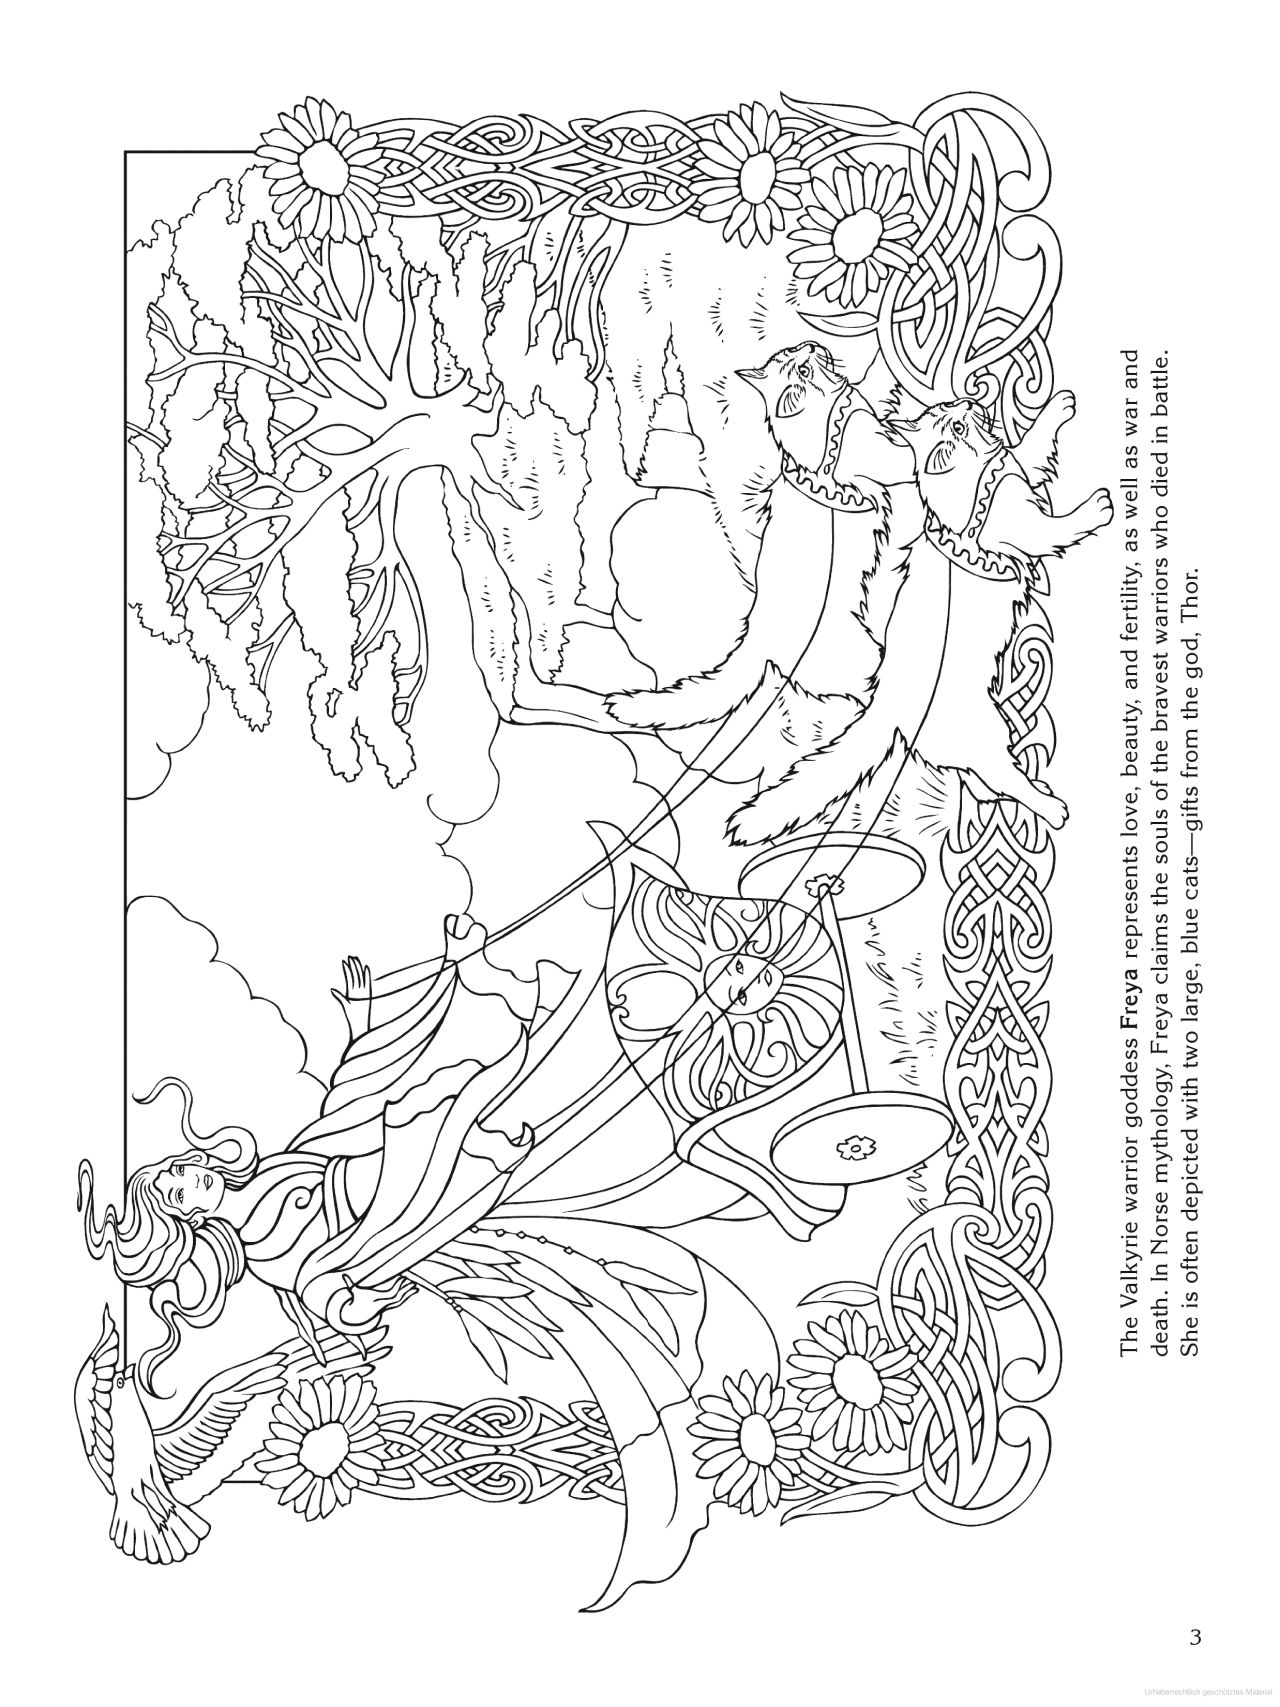 Viking Coloring Pages Images In 2019 Http Www Wallpaperartdesignhd Us Viking Coloring Pages Images In 20 Love Coloring Pages Cat Coloring Book Coloring Pages